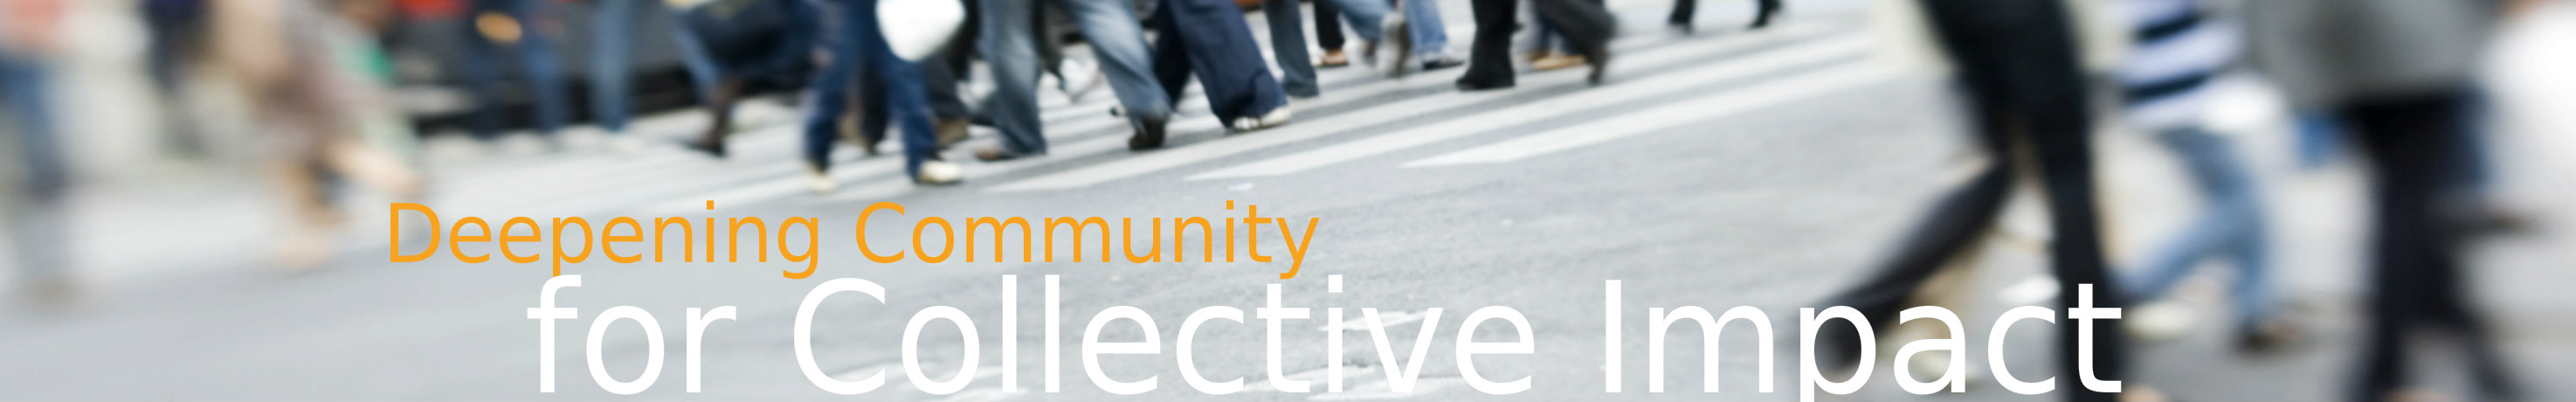 Deepening Community for Collective Impact